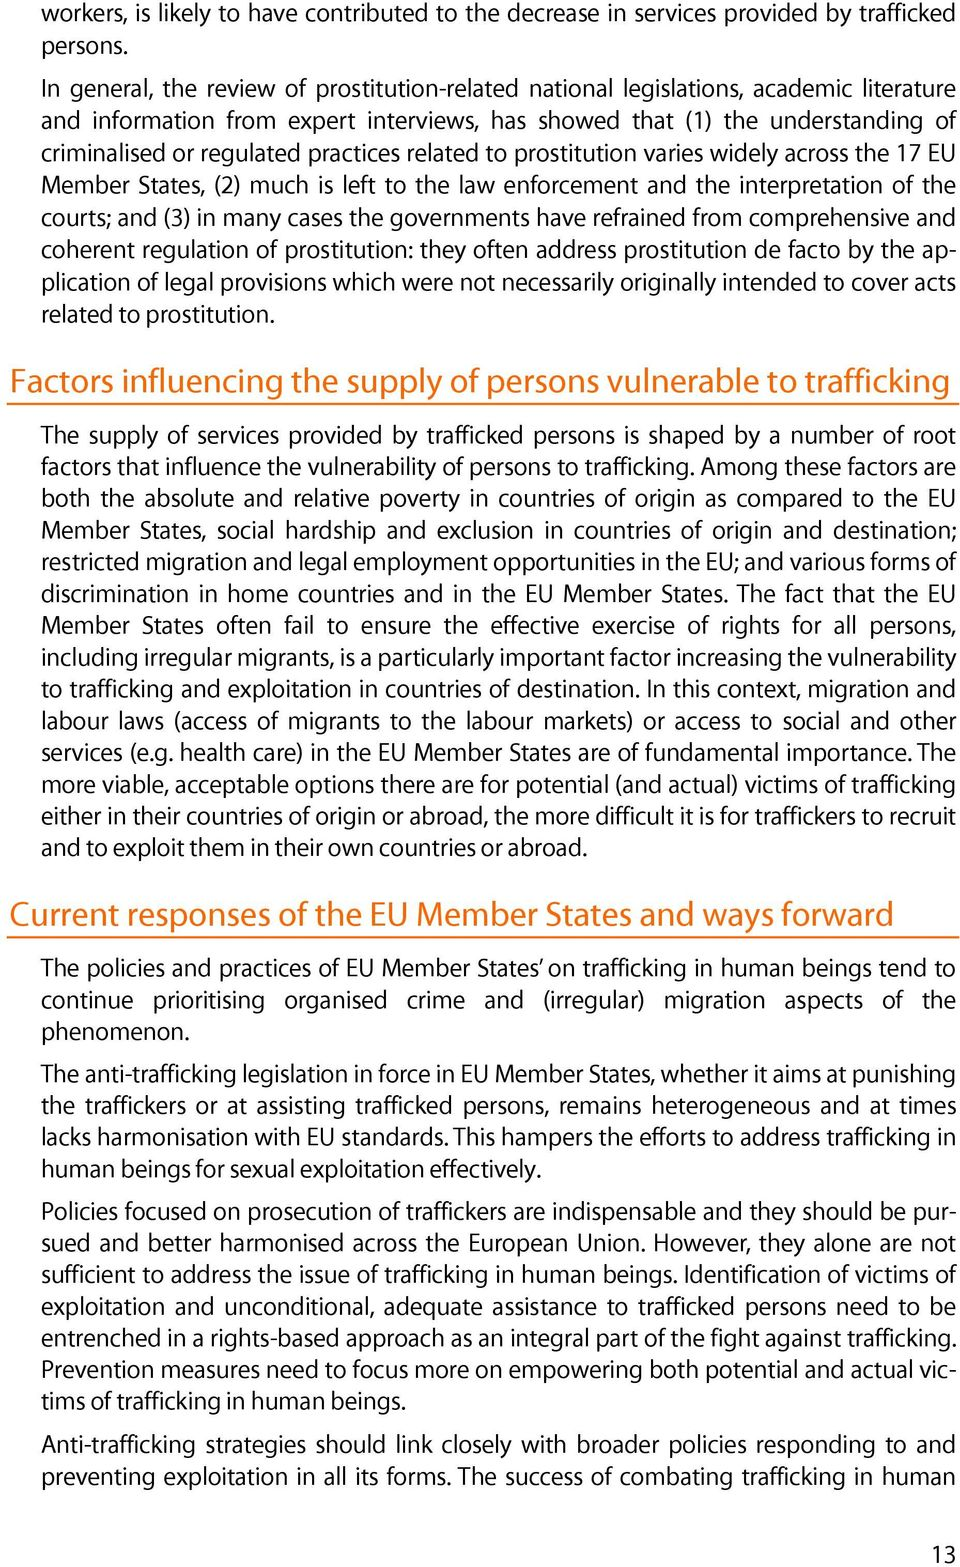 practices related to prostitution varies widely across the 17 EU Member States, (2) much is left to the law enforcement and the interpretation of the courts; and (3) in many cases the governments